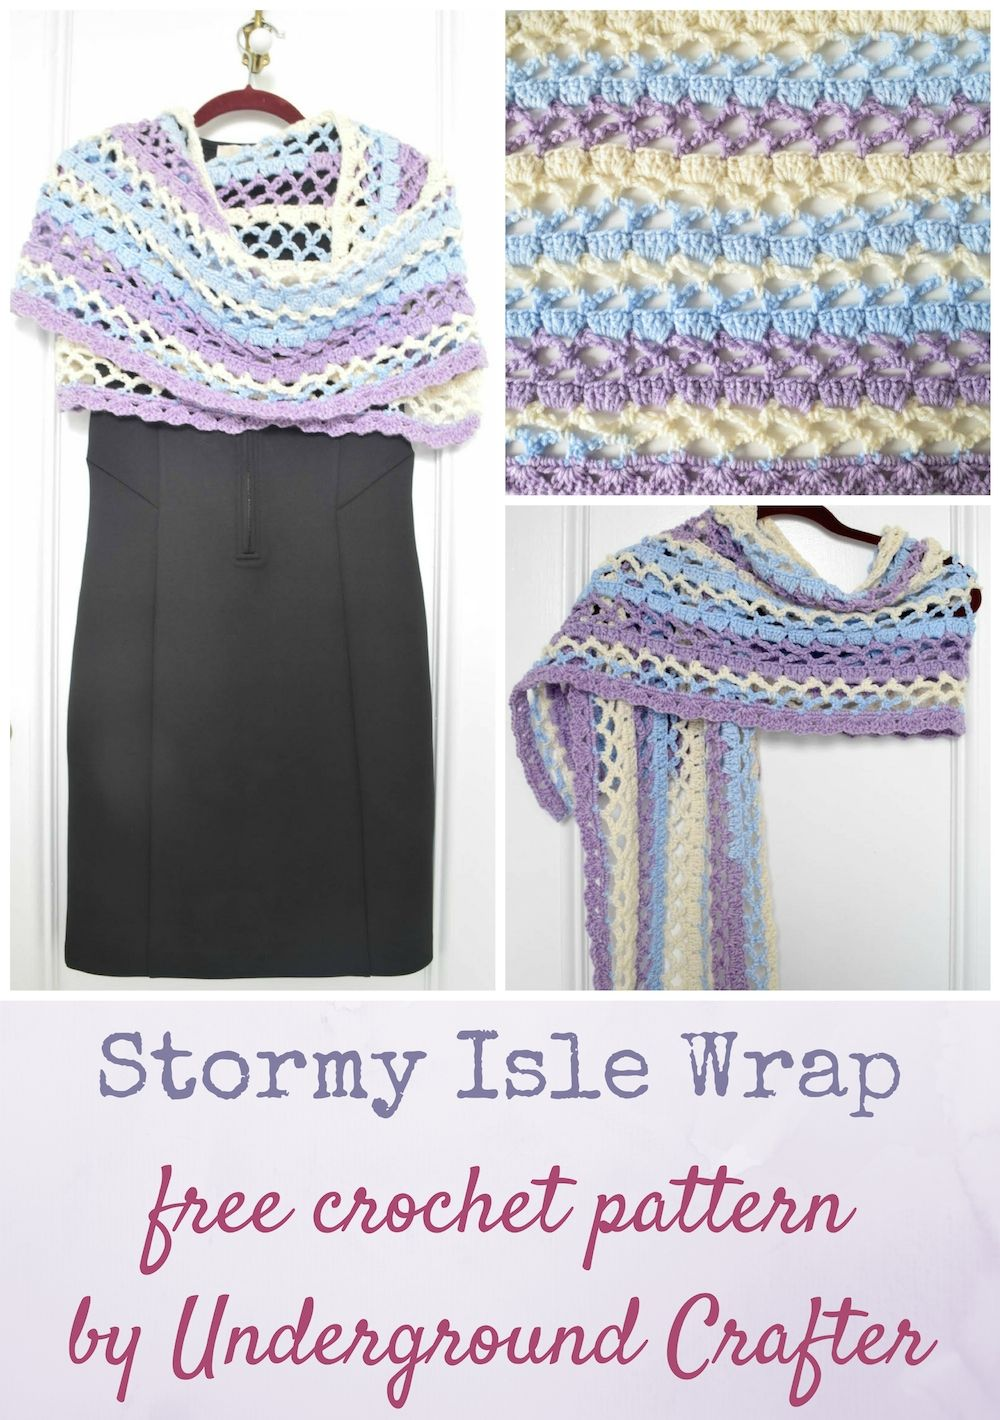 Stormy Isle Wrap, free crochet pattern in Premier Yarns Sweet Roll yarn by Underground Crafter | A simple stitch pattern combined with a self-striping yarn creates a stunning, lacy rectangular shawl. Keep your shoulders warm while adding color to any outfit.